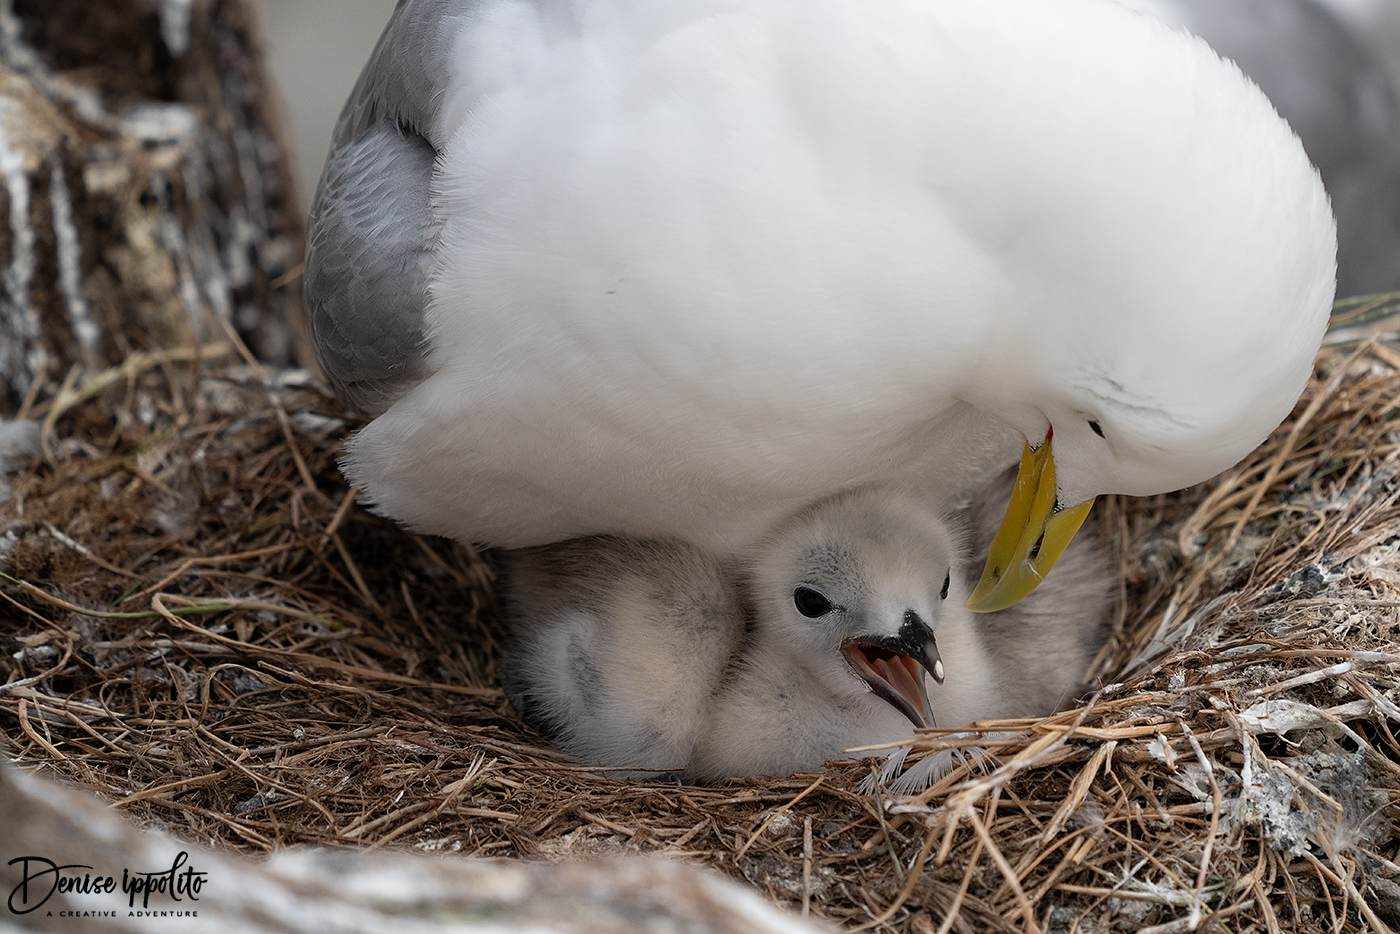 Kittiwake with chick